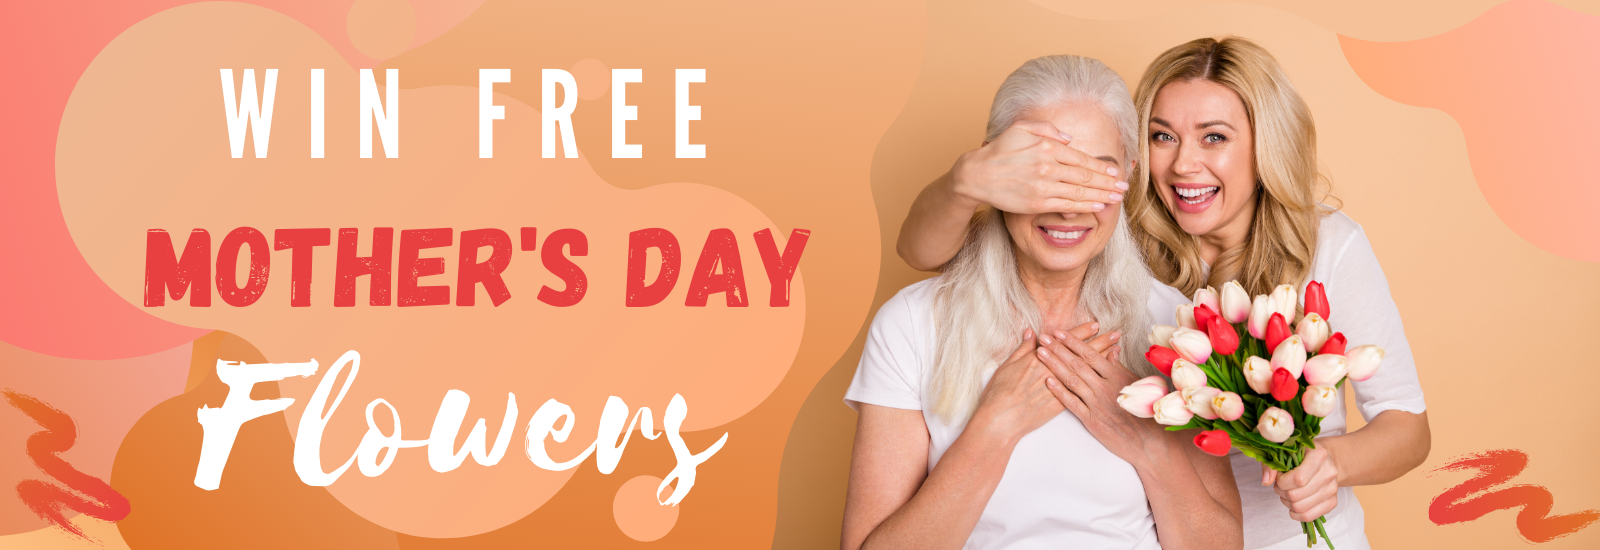 Win Mother's Day Flowers Free